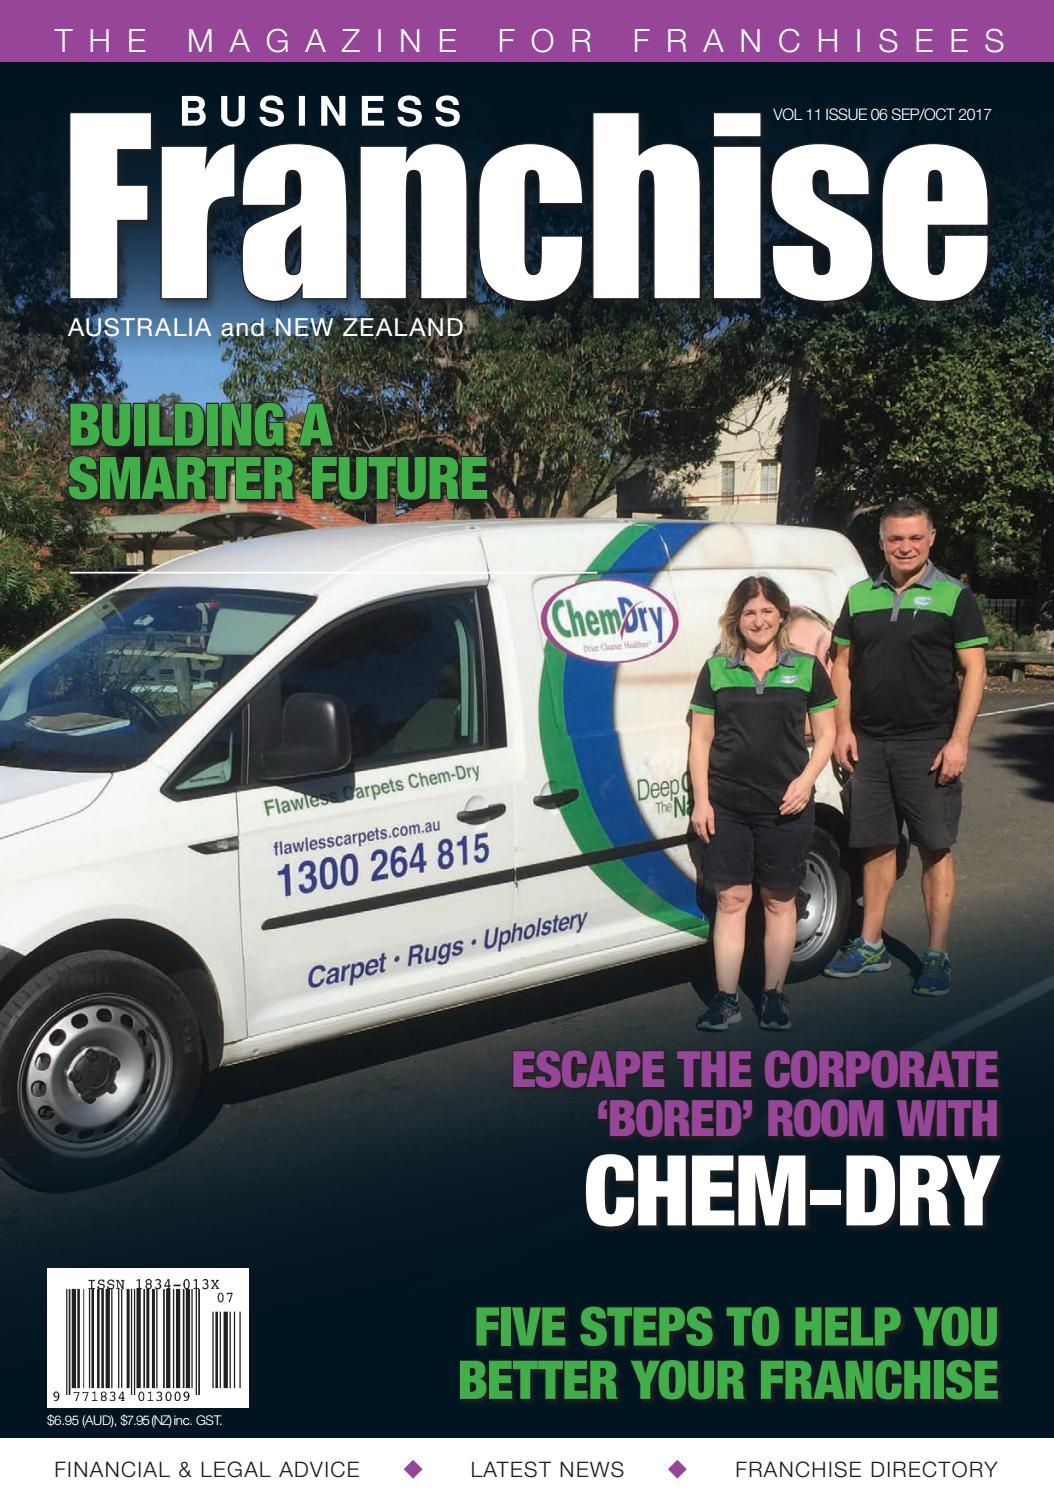 Business Franchise Aus Nz September October 2017 By Cgb Publishing Hit Auta 2040 Car Electric Antenna Universal Fitting Issuu